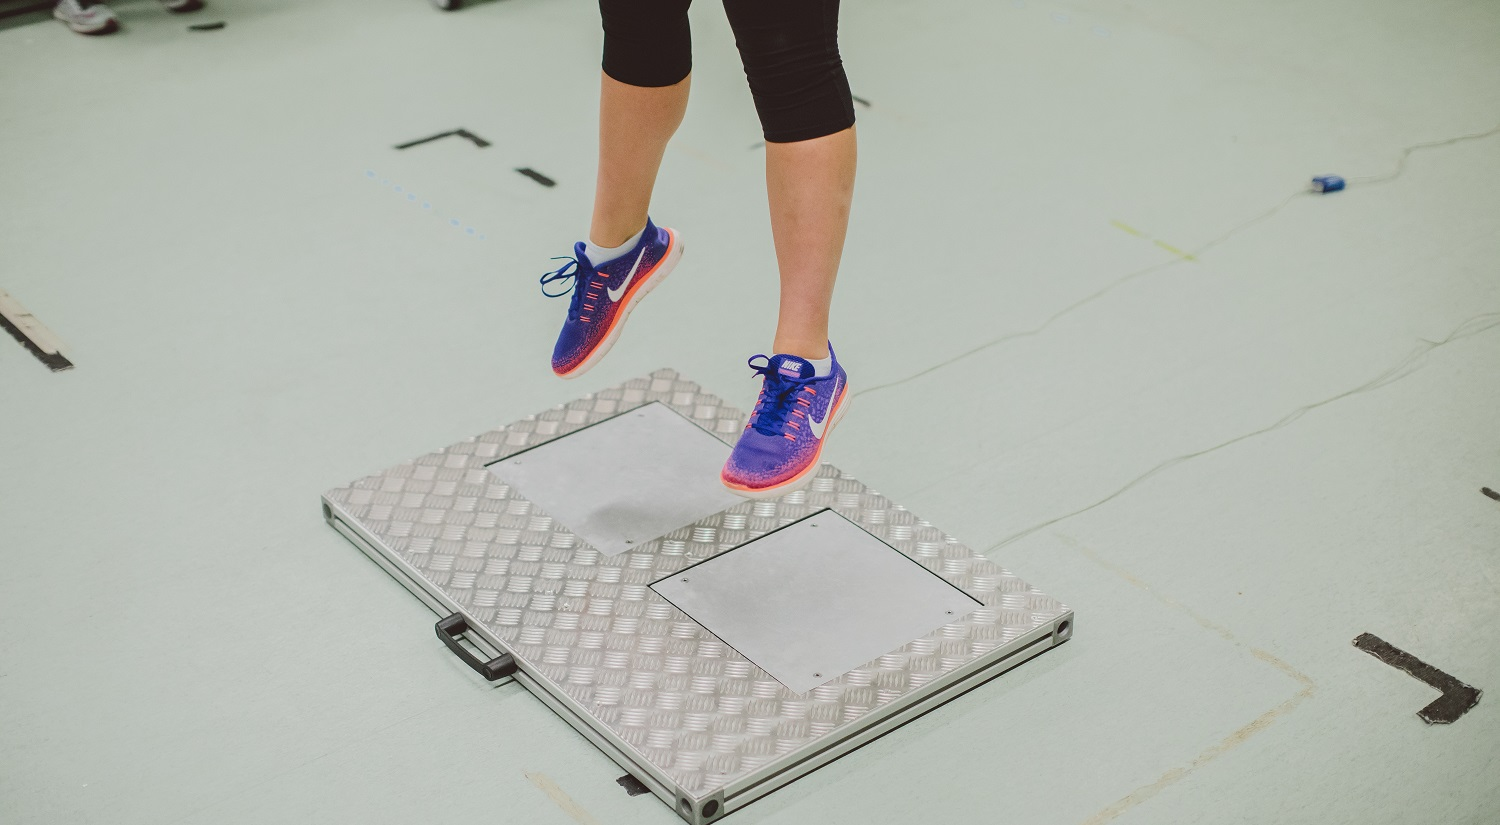 Our Biomechanics lab has a range of equipment used by students and researchers, including several types of forceplates.